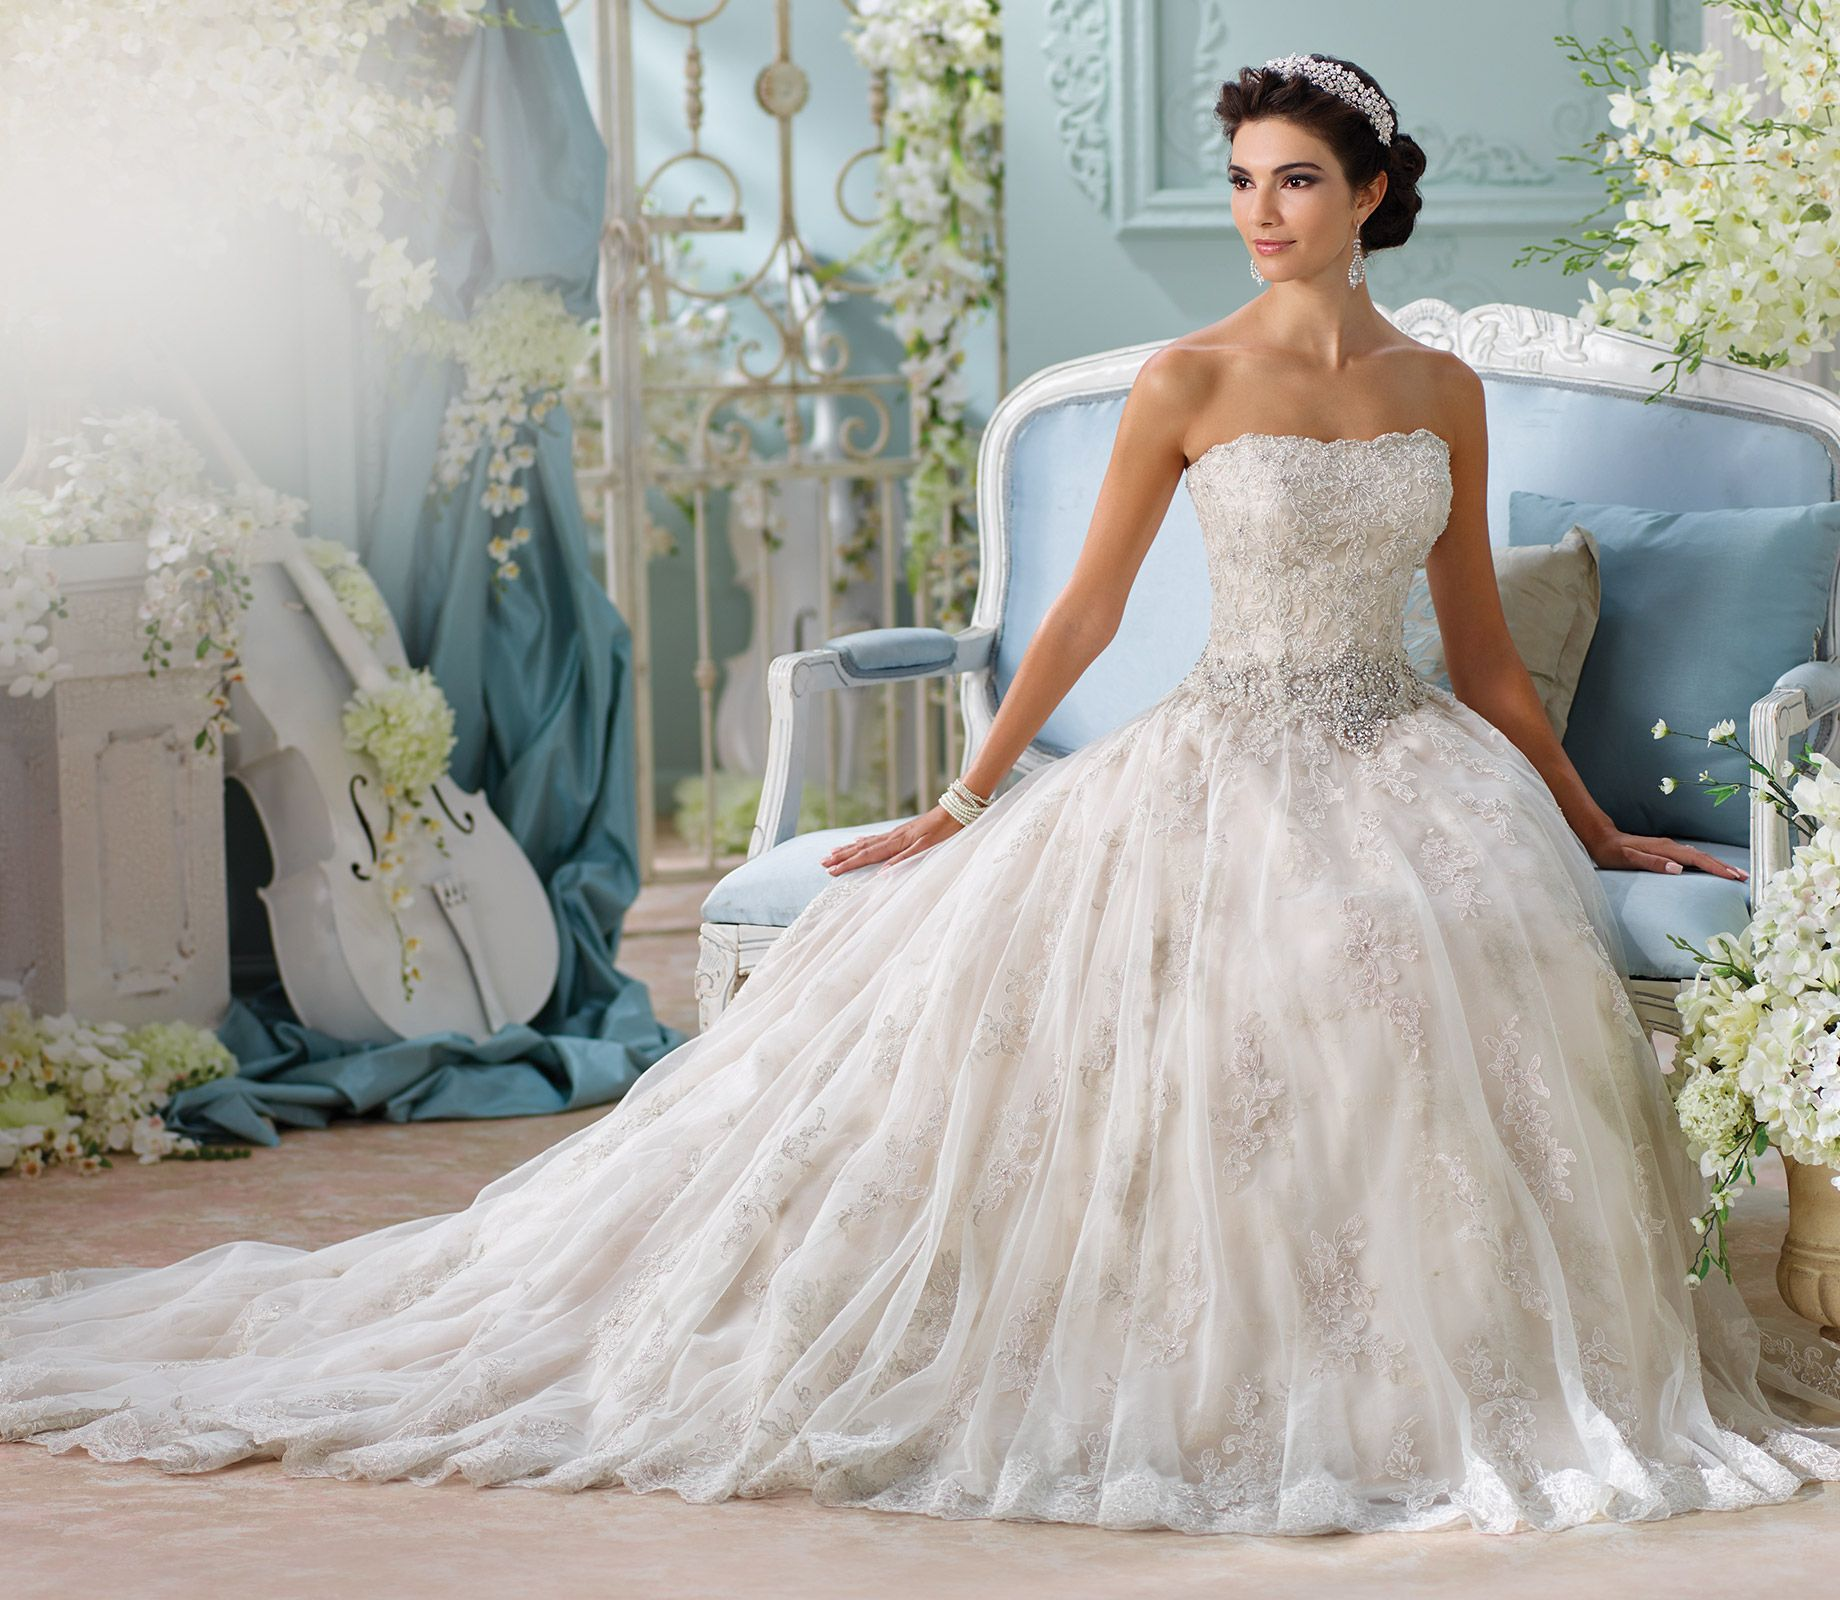 Metallic embroidered lace tulle ball gown wedding dress